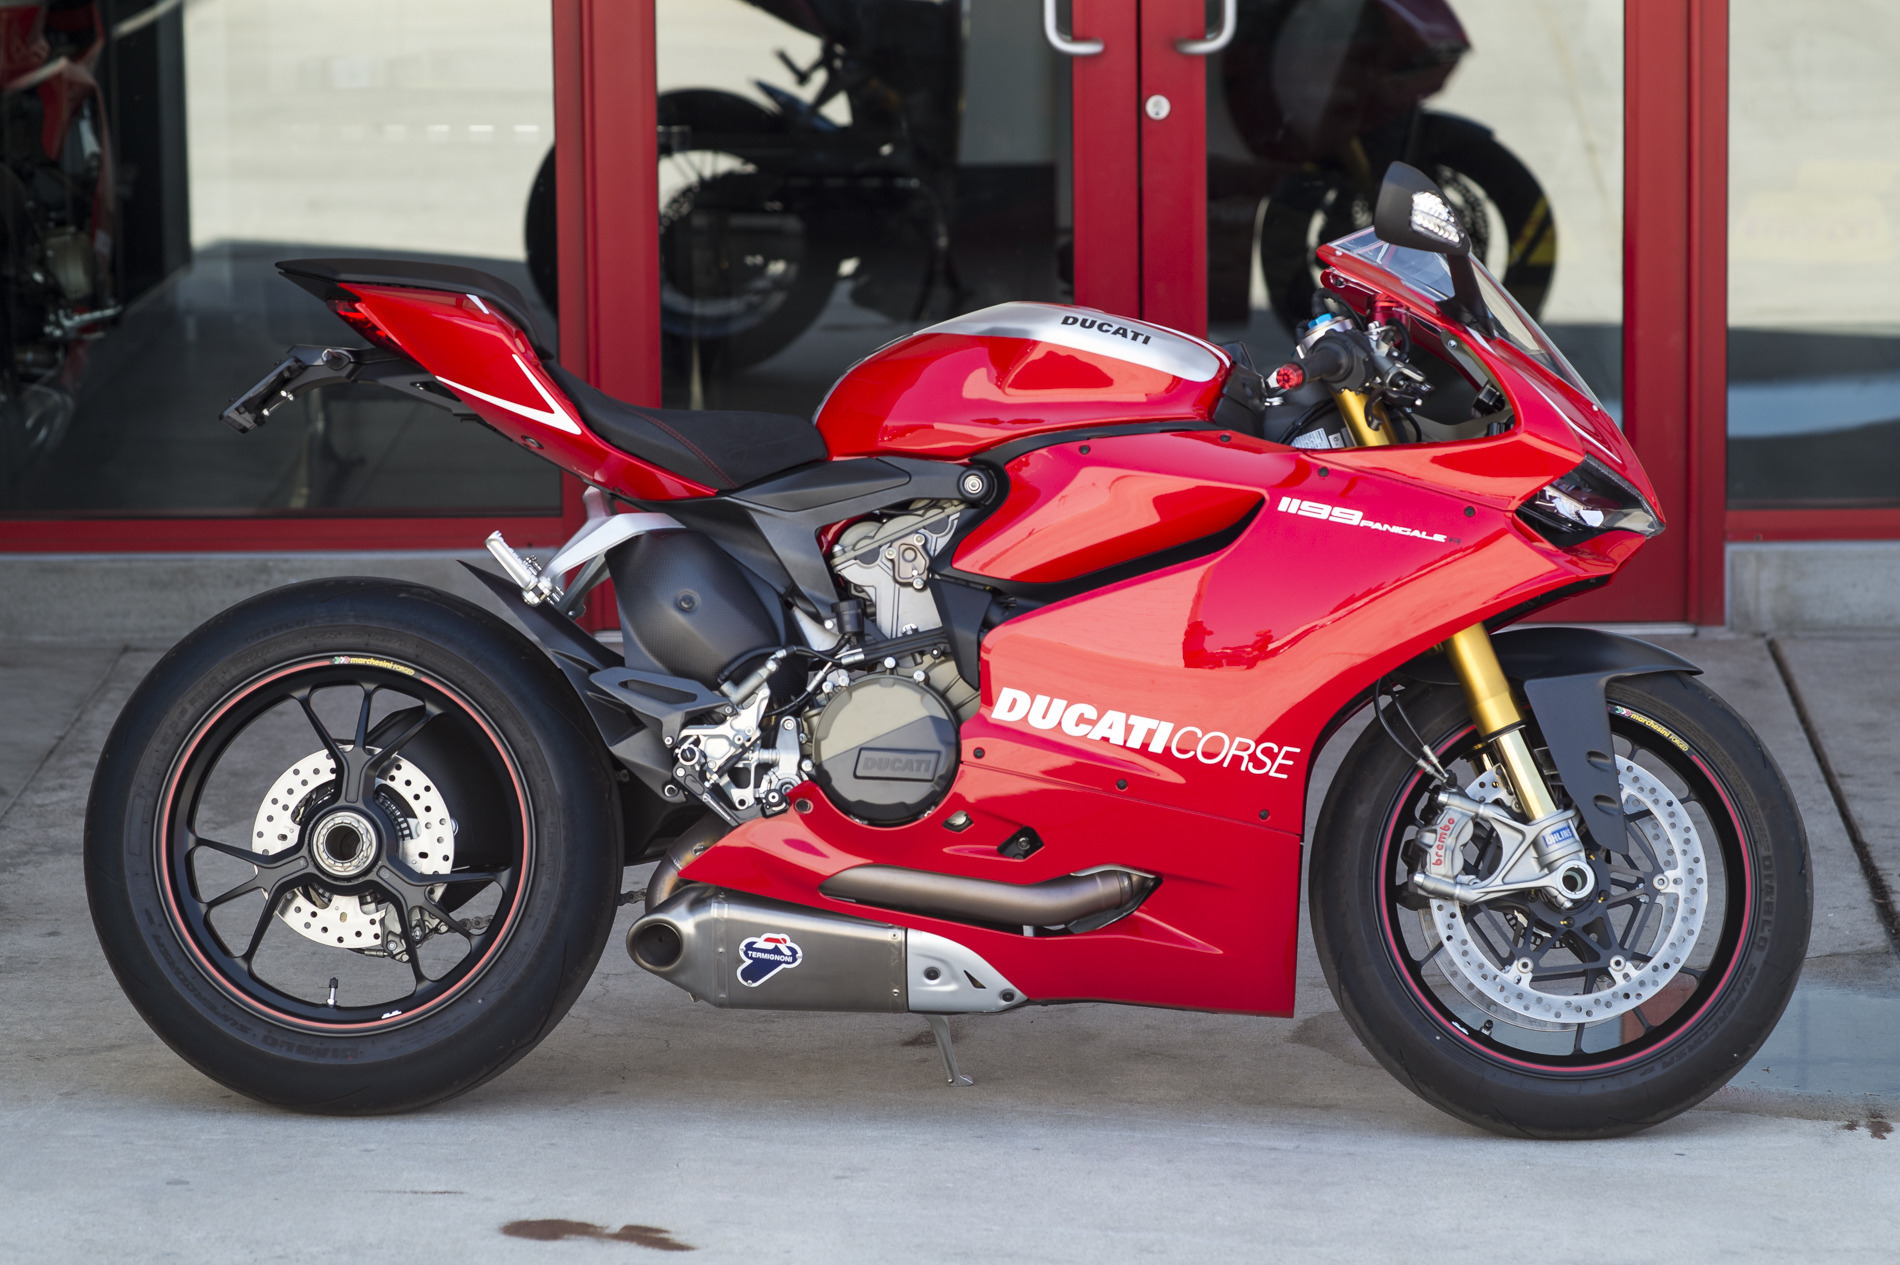 2013 Ducati SUPERBIKE 1199 PANIGALE R, motorcycle listing